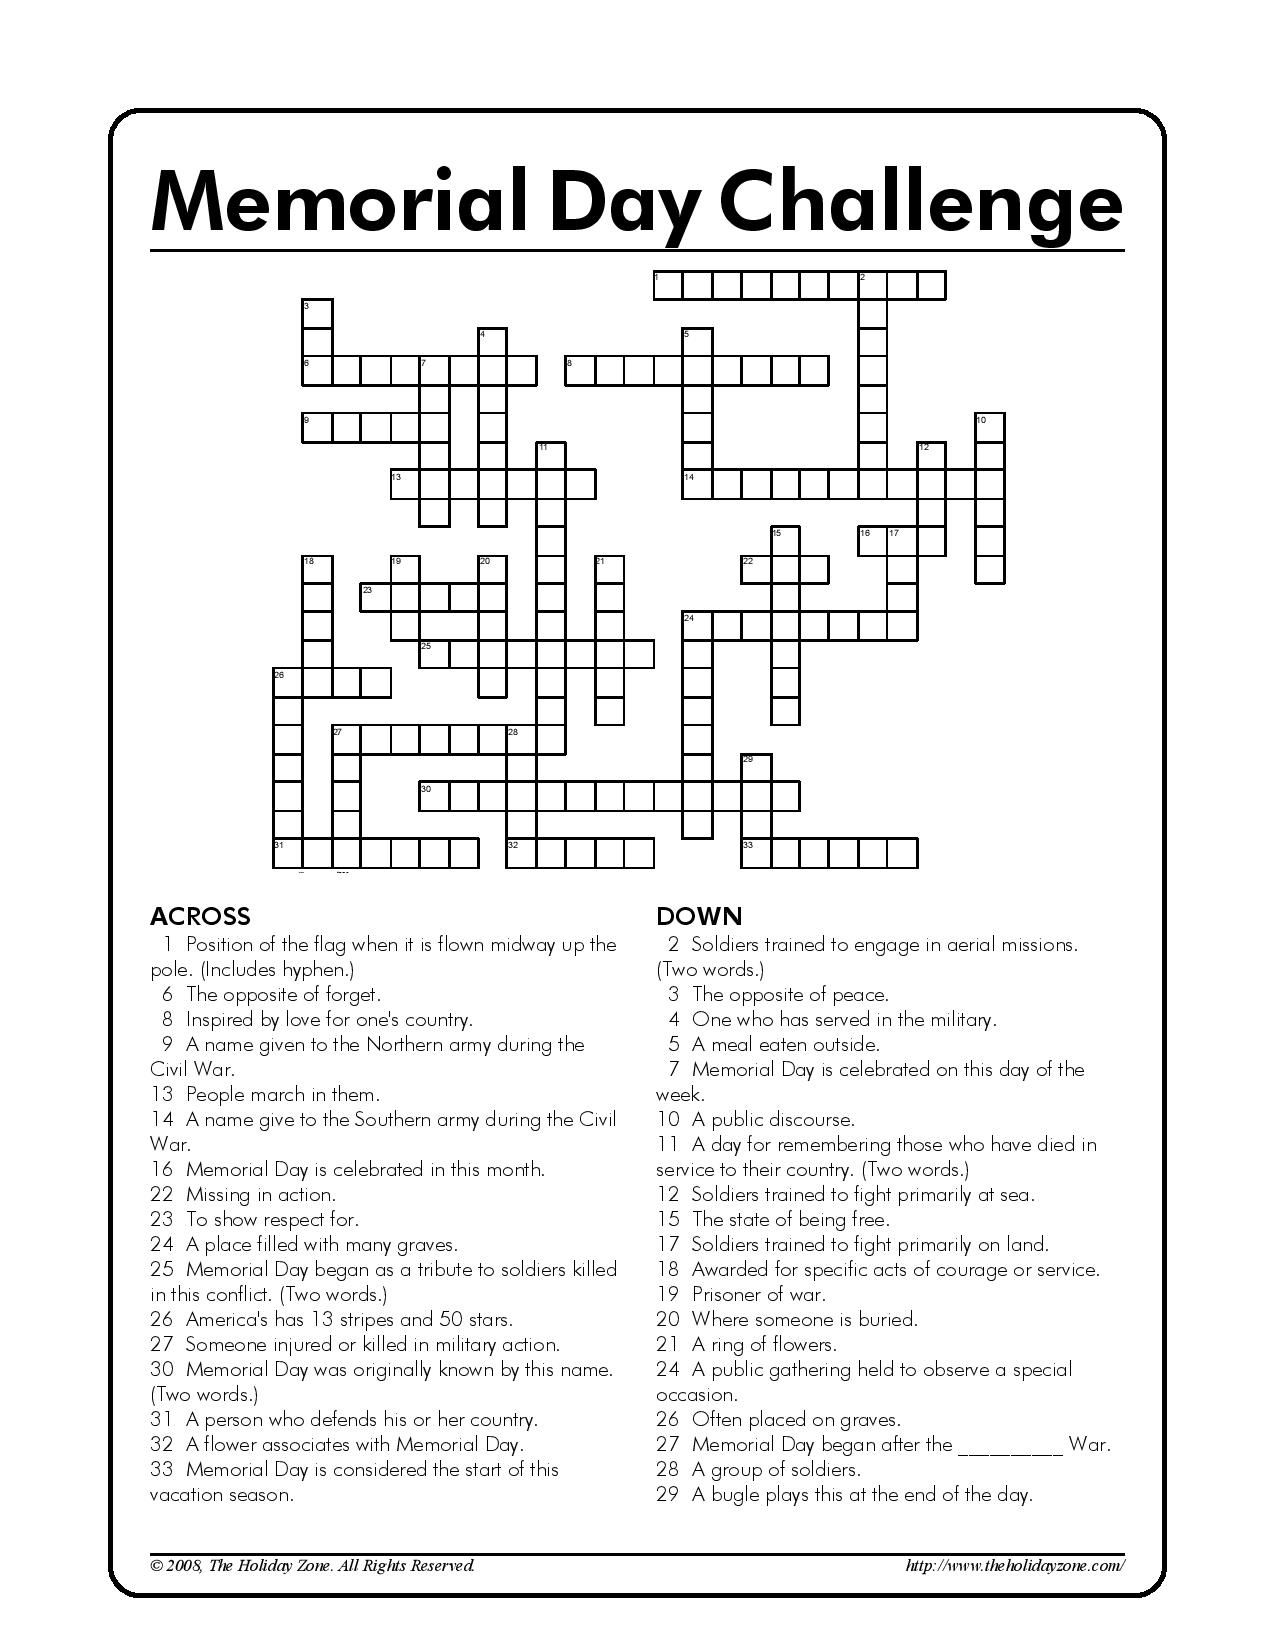 Memorial Day Kids Crossword Puzzle Courtesy Of The